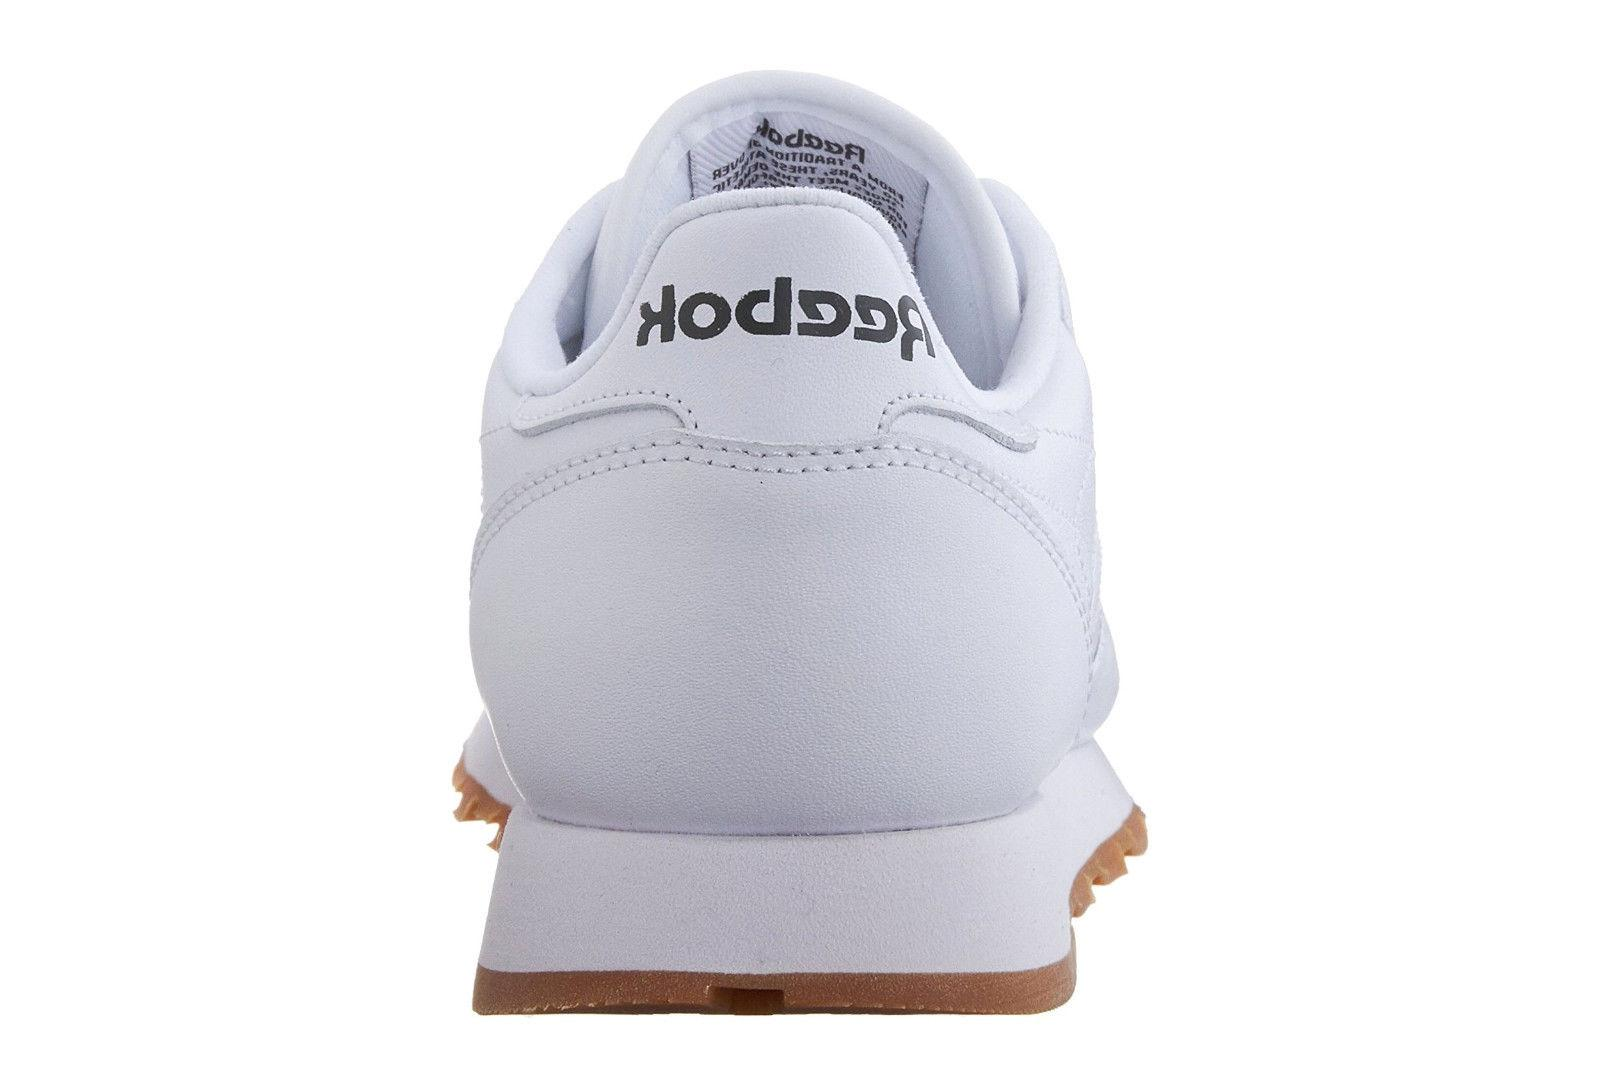 Reebok Classic White, Gum Mens Shoes Item